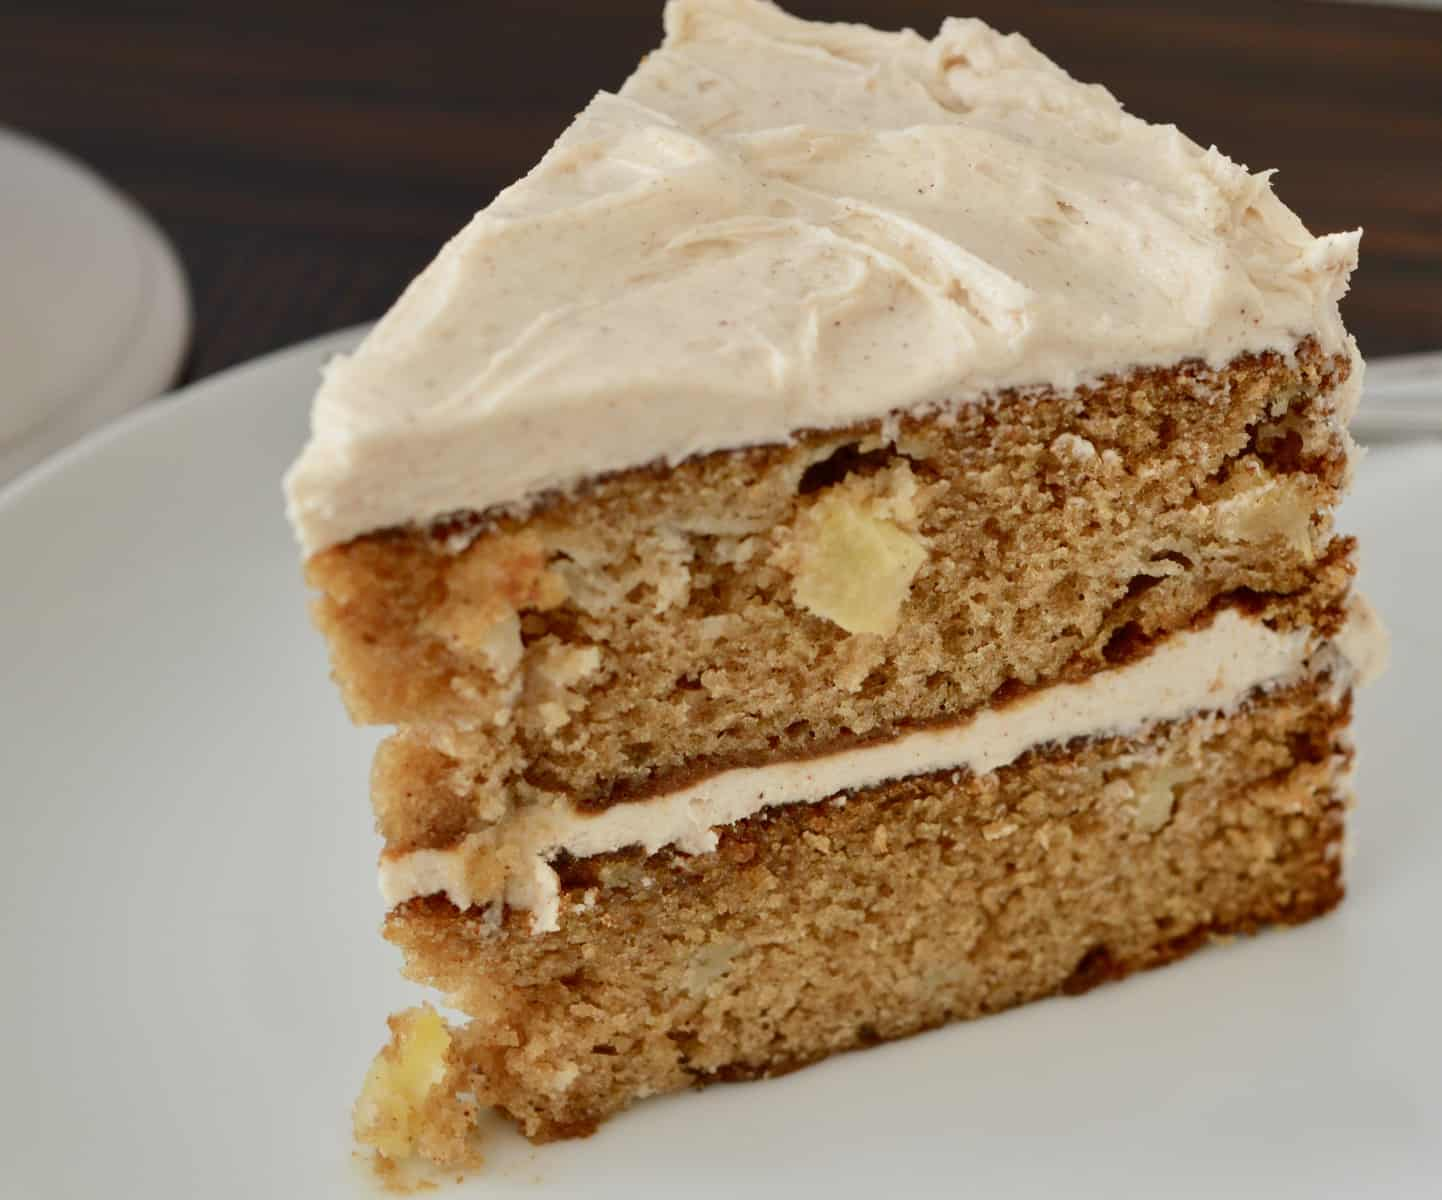 Slice of Apple Spice Cake with Cinnamon Buttercream Frosting on a white plate.